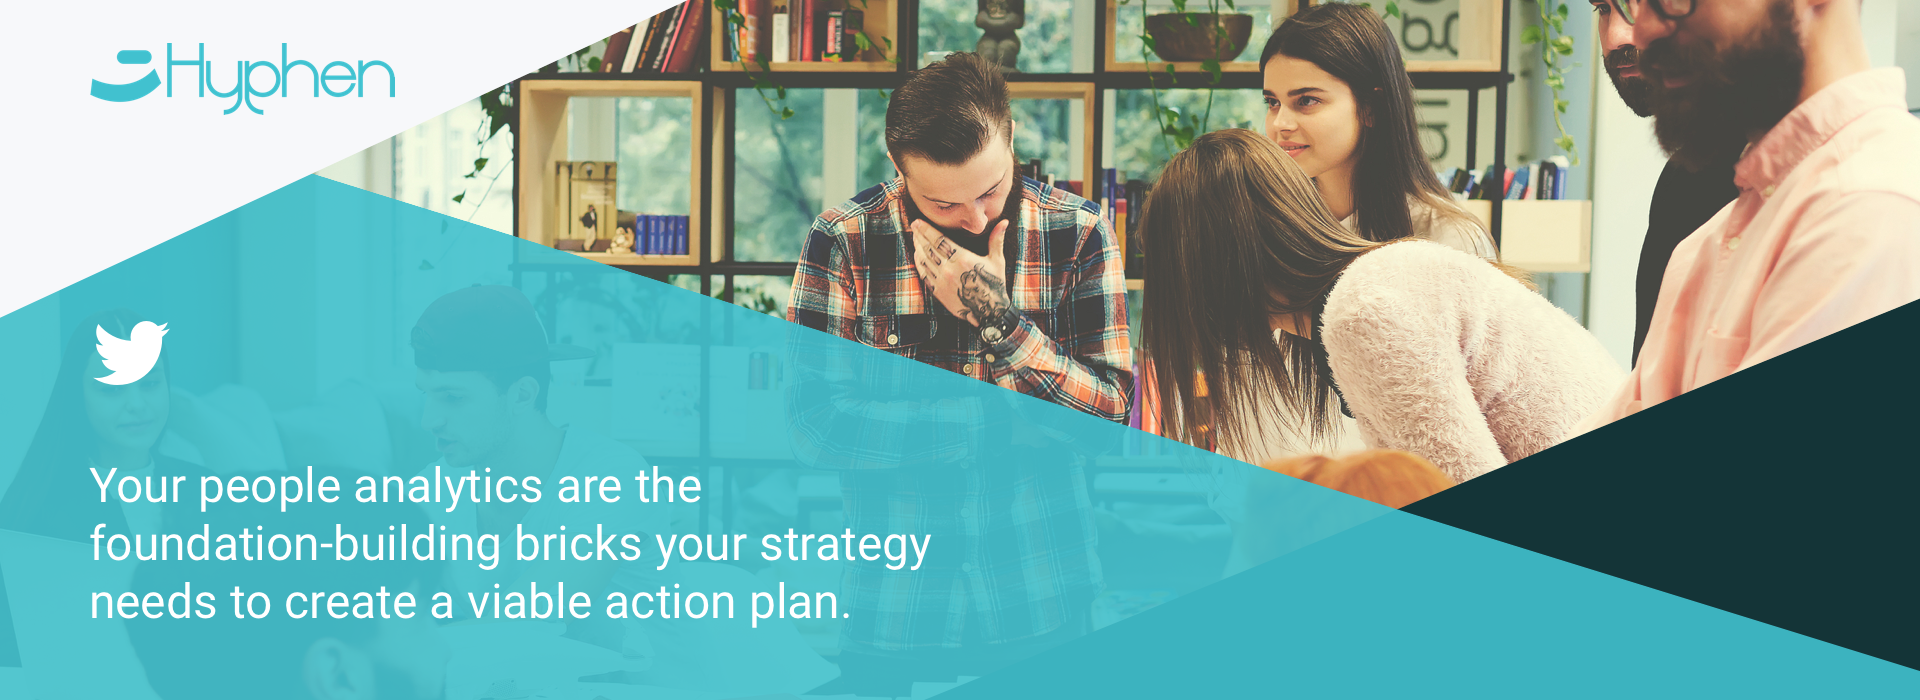 Your people analytics are the foundation-building bricks your strategy needs to create a viable action plan.